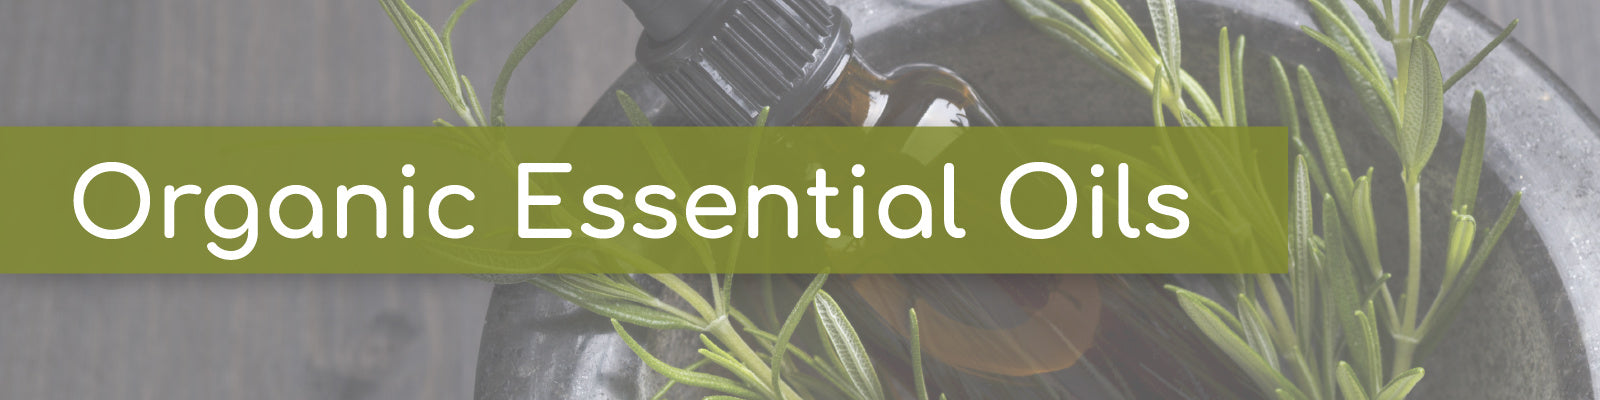 Collections organic essential oils